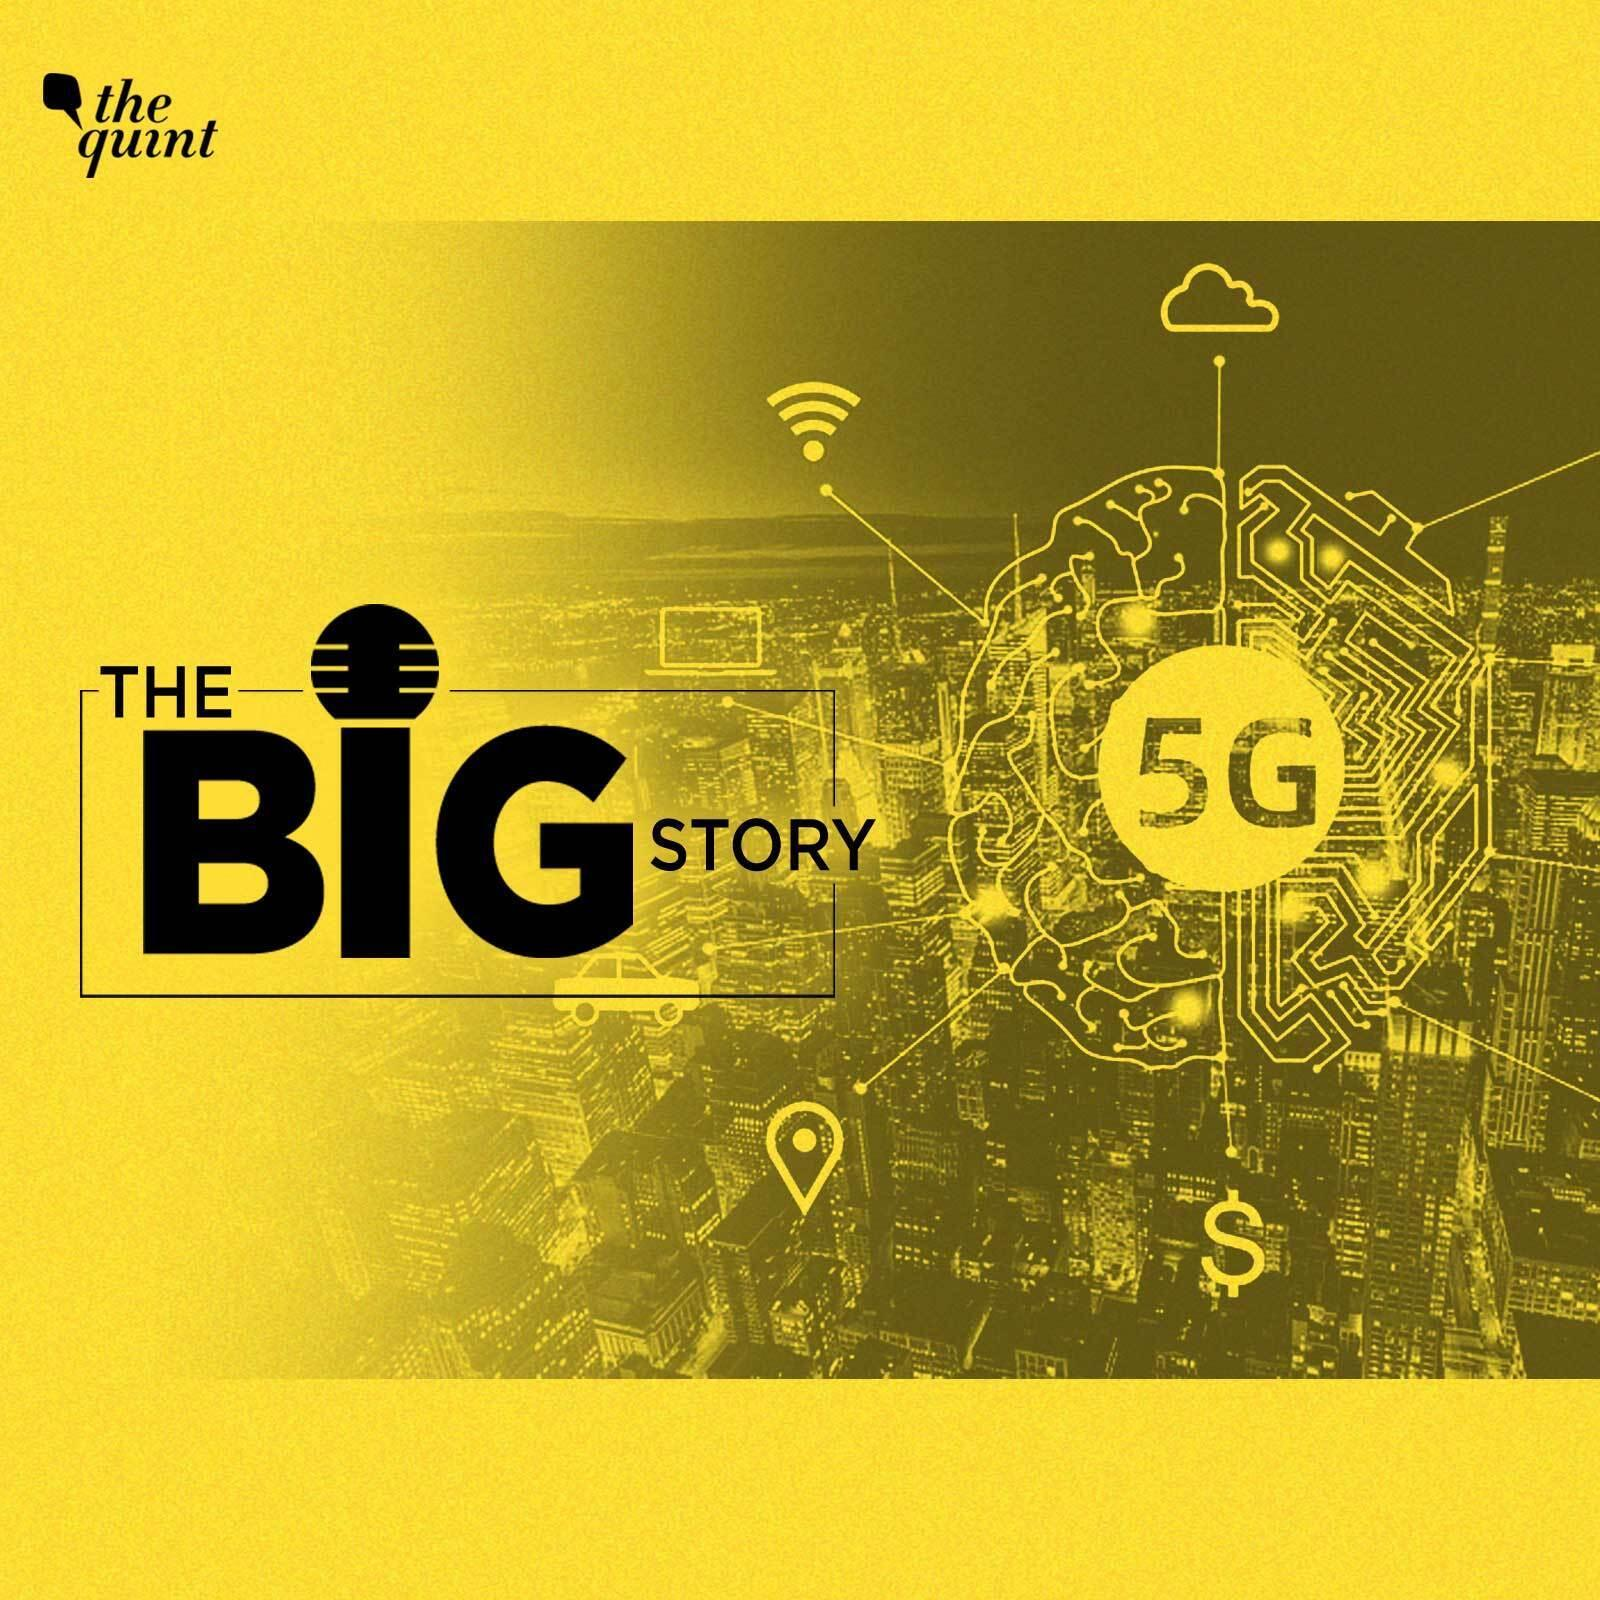 633: How Prepared is the Department of Telecommunication to Rollout 5G?